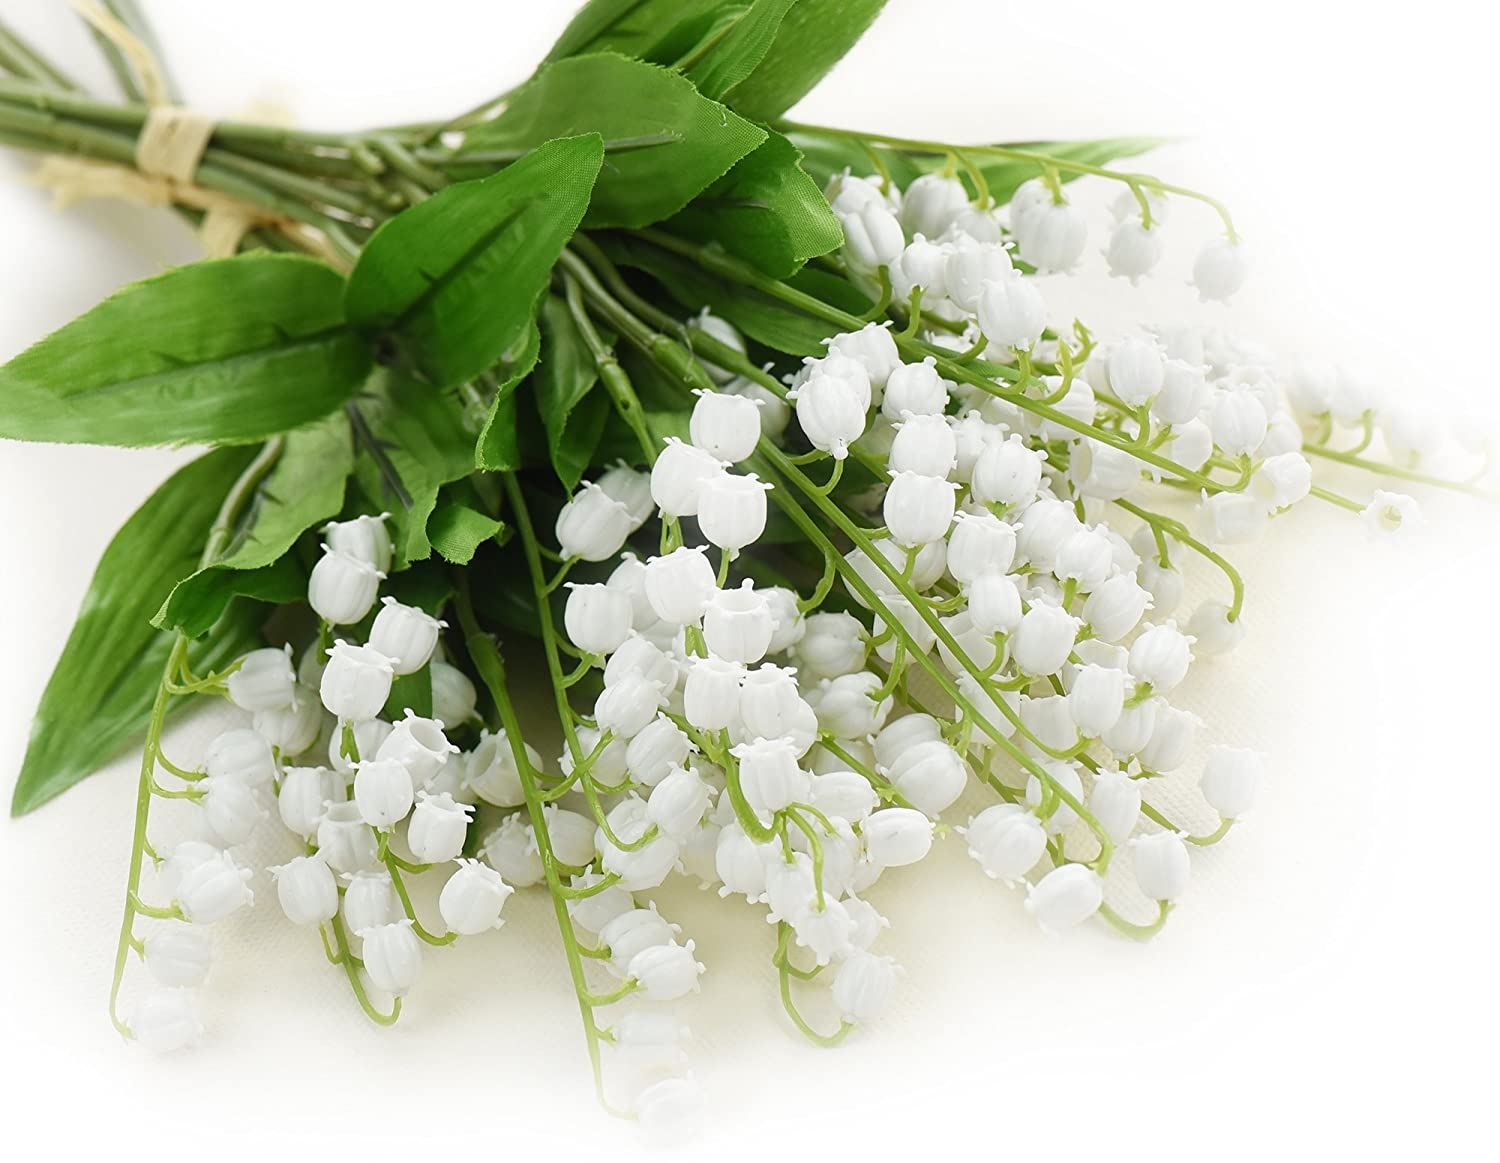 Amazon Fiveseasonstuff 12 Stems Of Artificial White Lily Of The